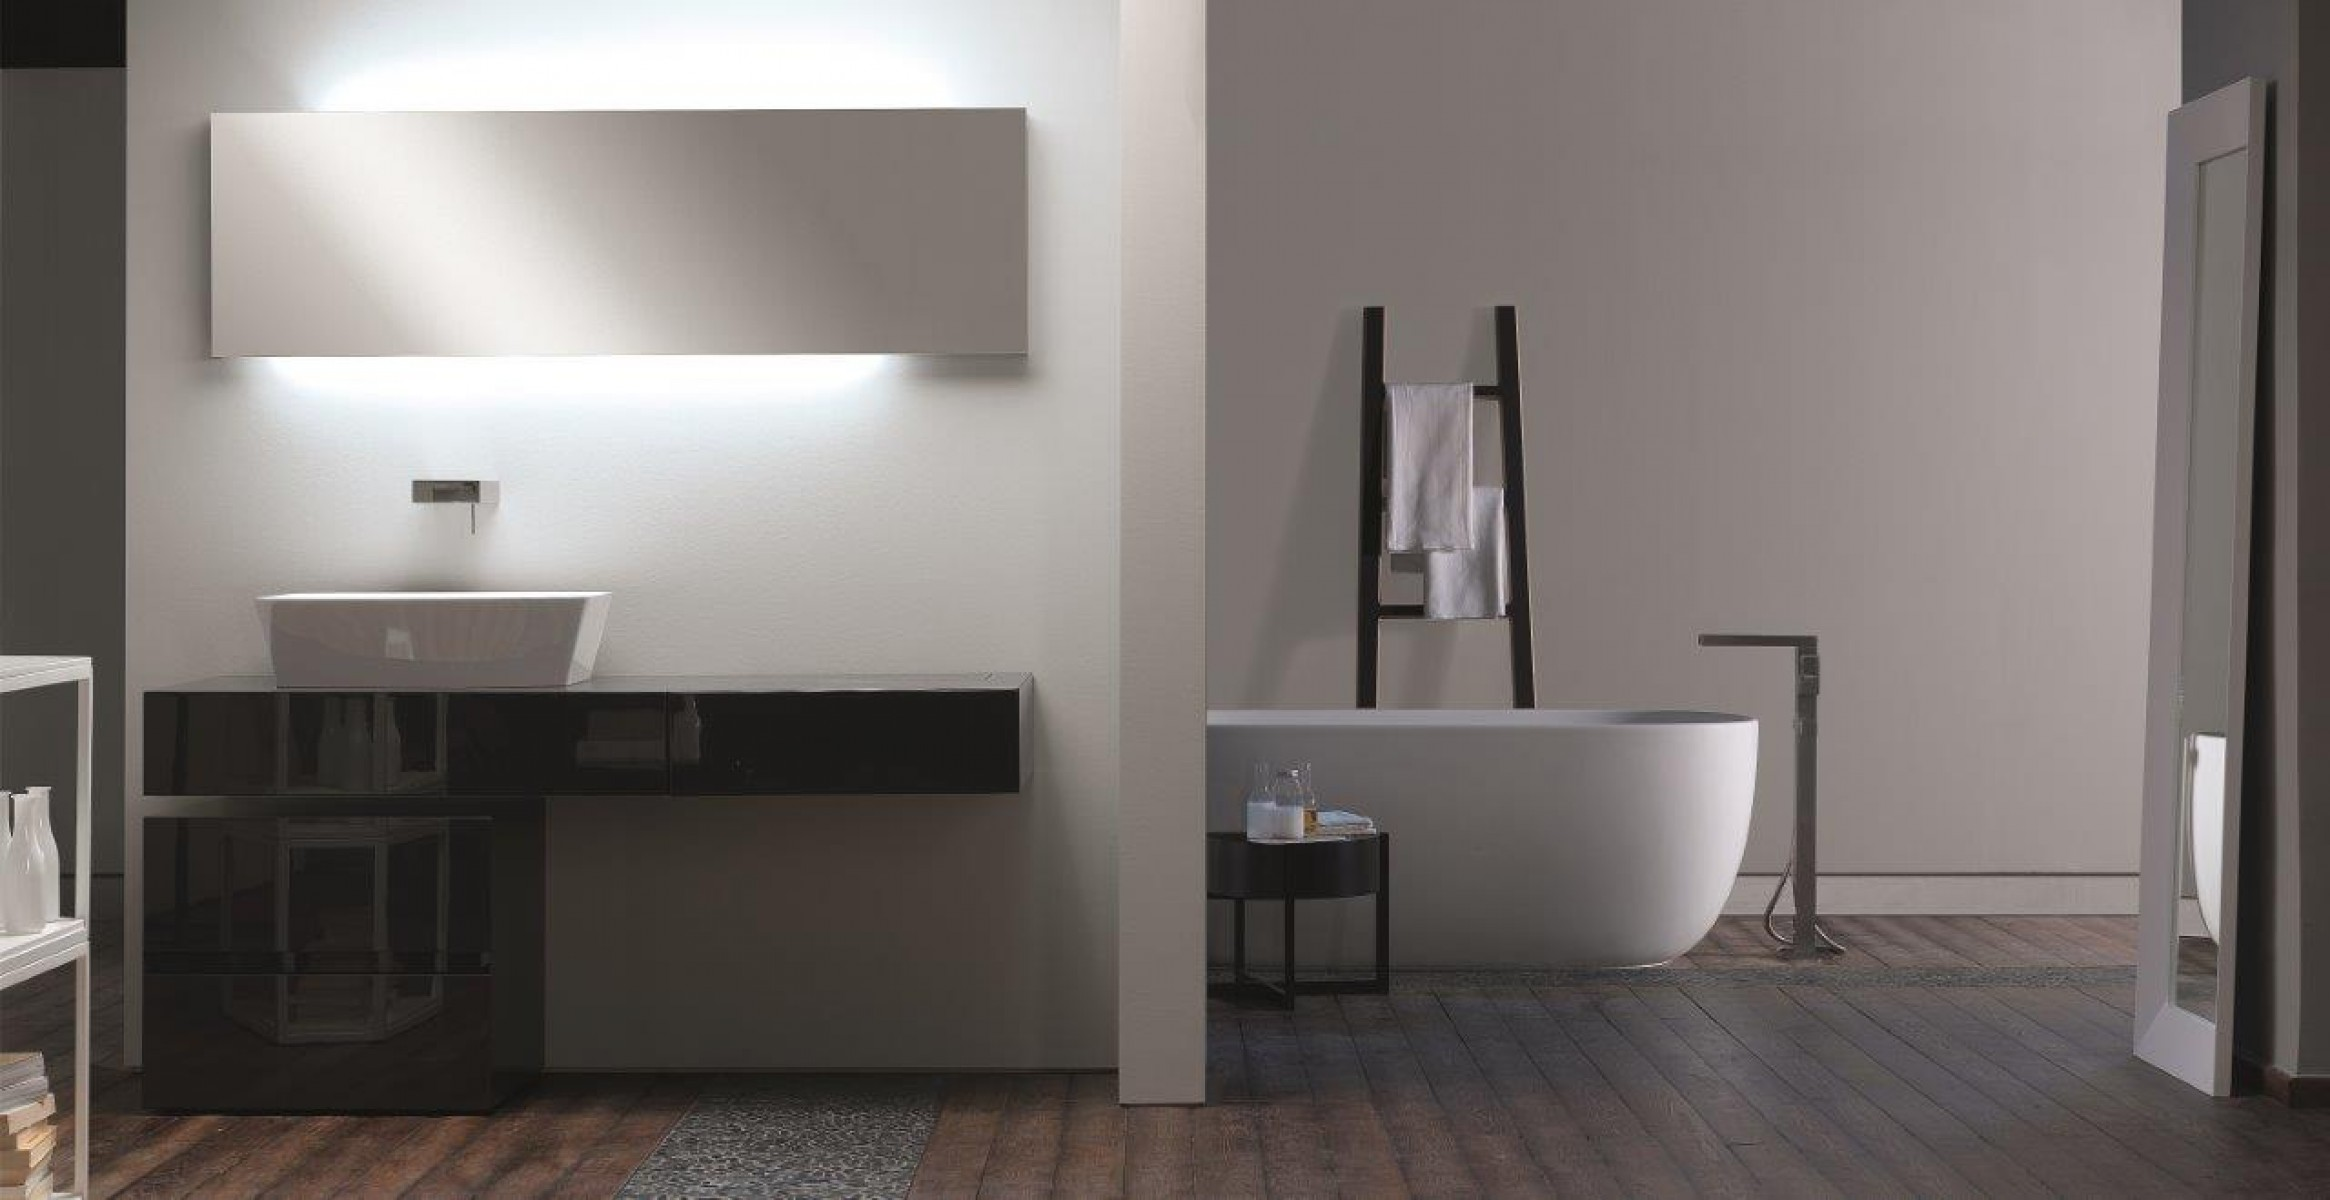 Bathroom Design Ideas Italian ultra modern italian bathroom design